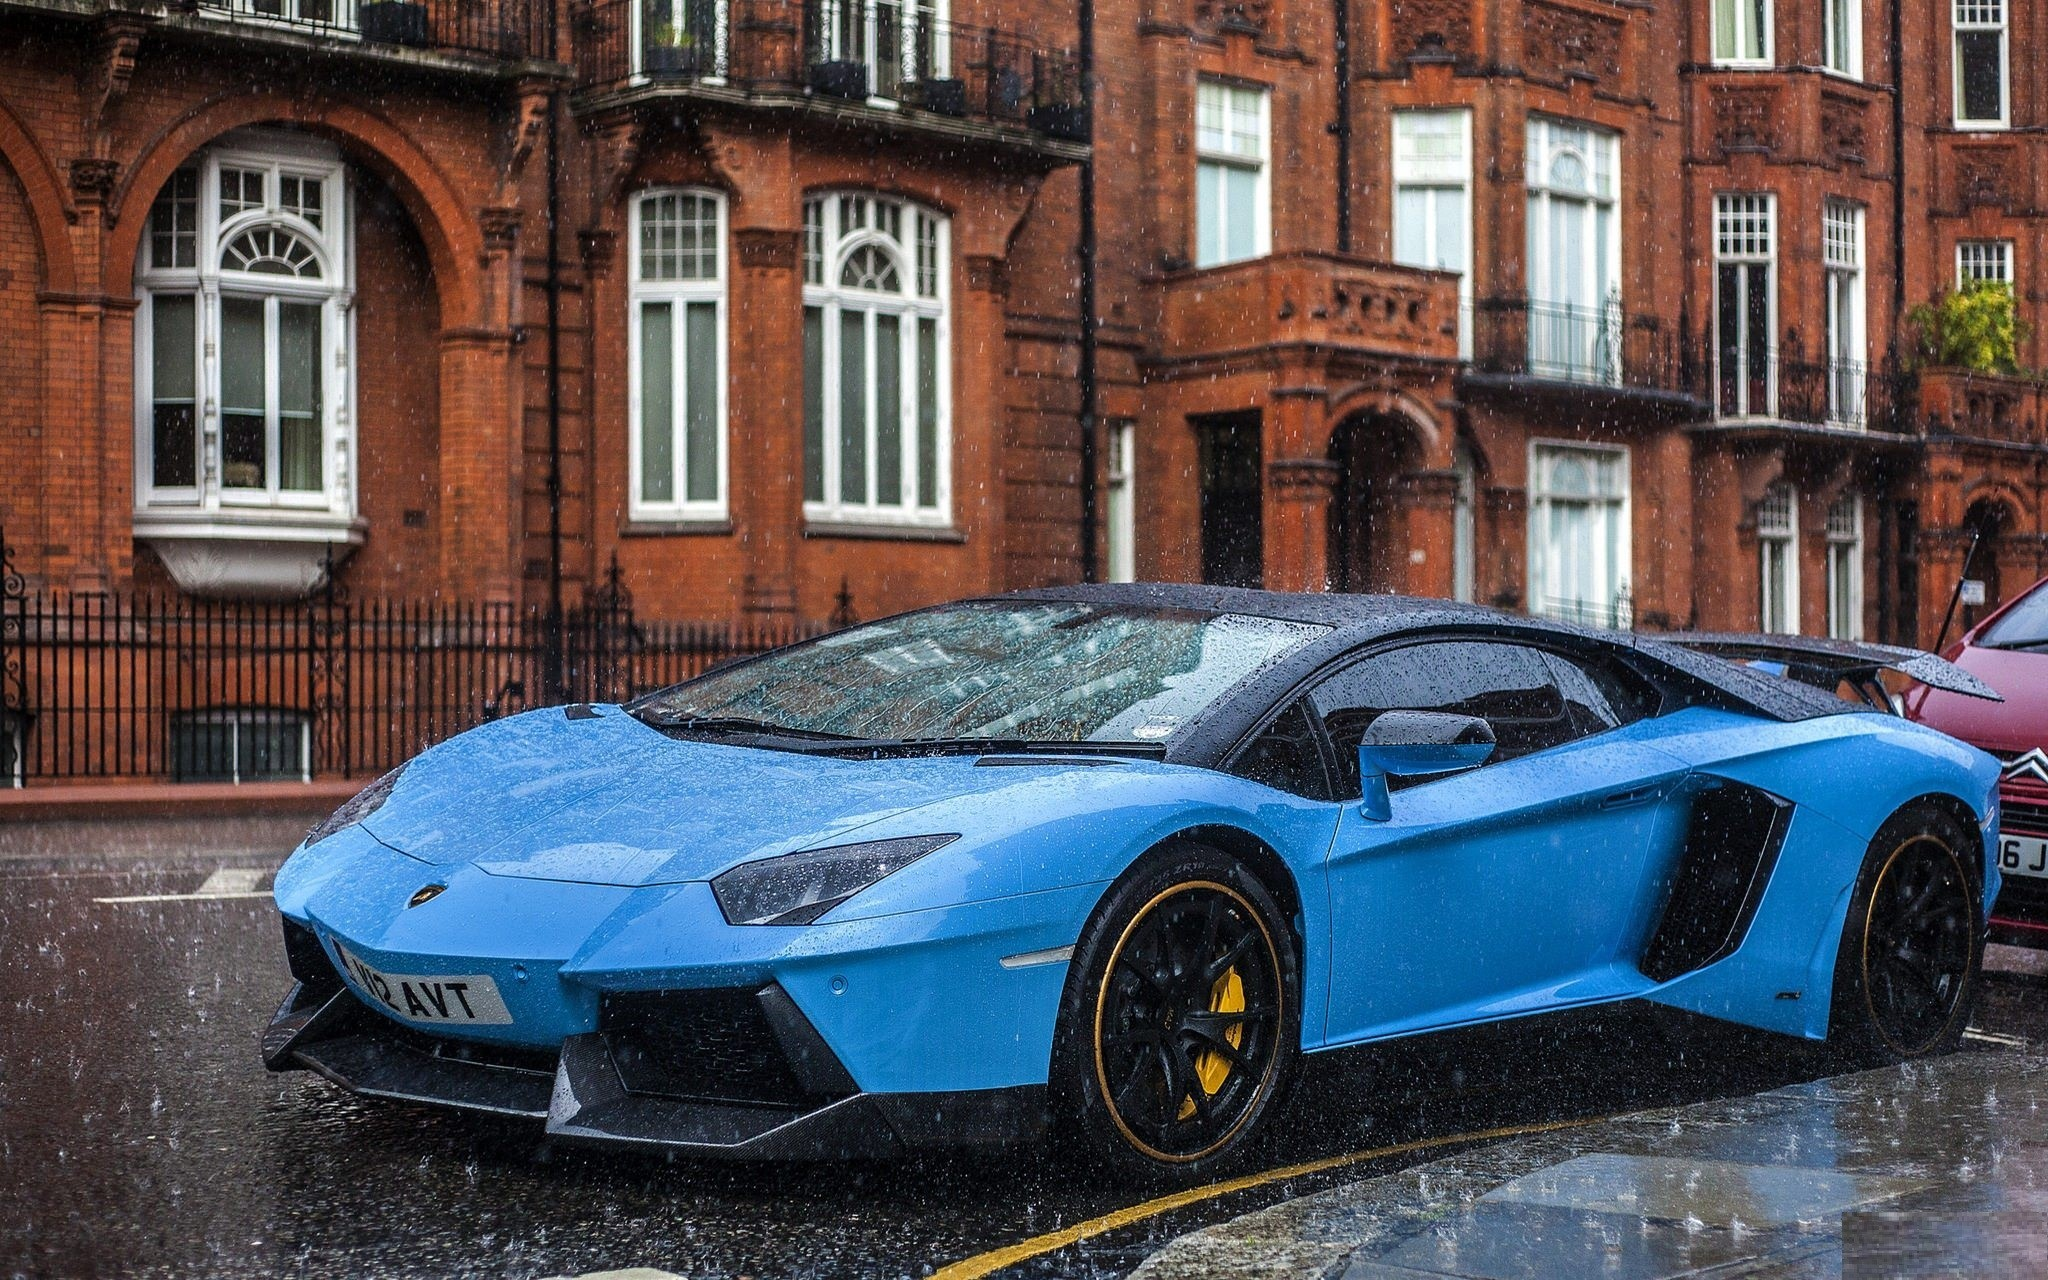 2048x1280 Aventador Lamborghini Blue Car in Rain HD Luxury Wallpaper